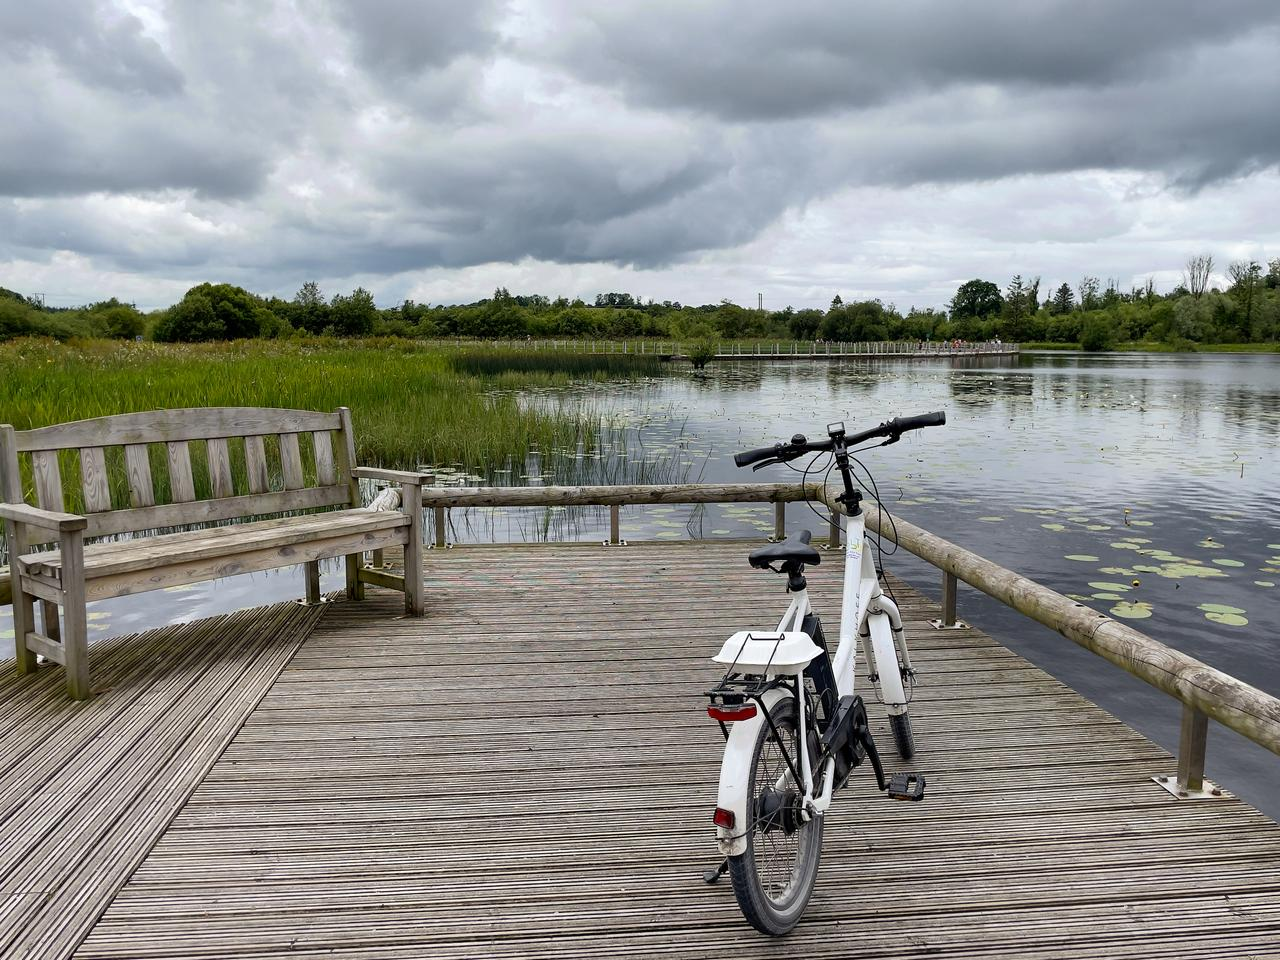 Bicycles--Equipment and supplies, Bicycle tire, Water, Cloud, Wheel, Sky, Crankset